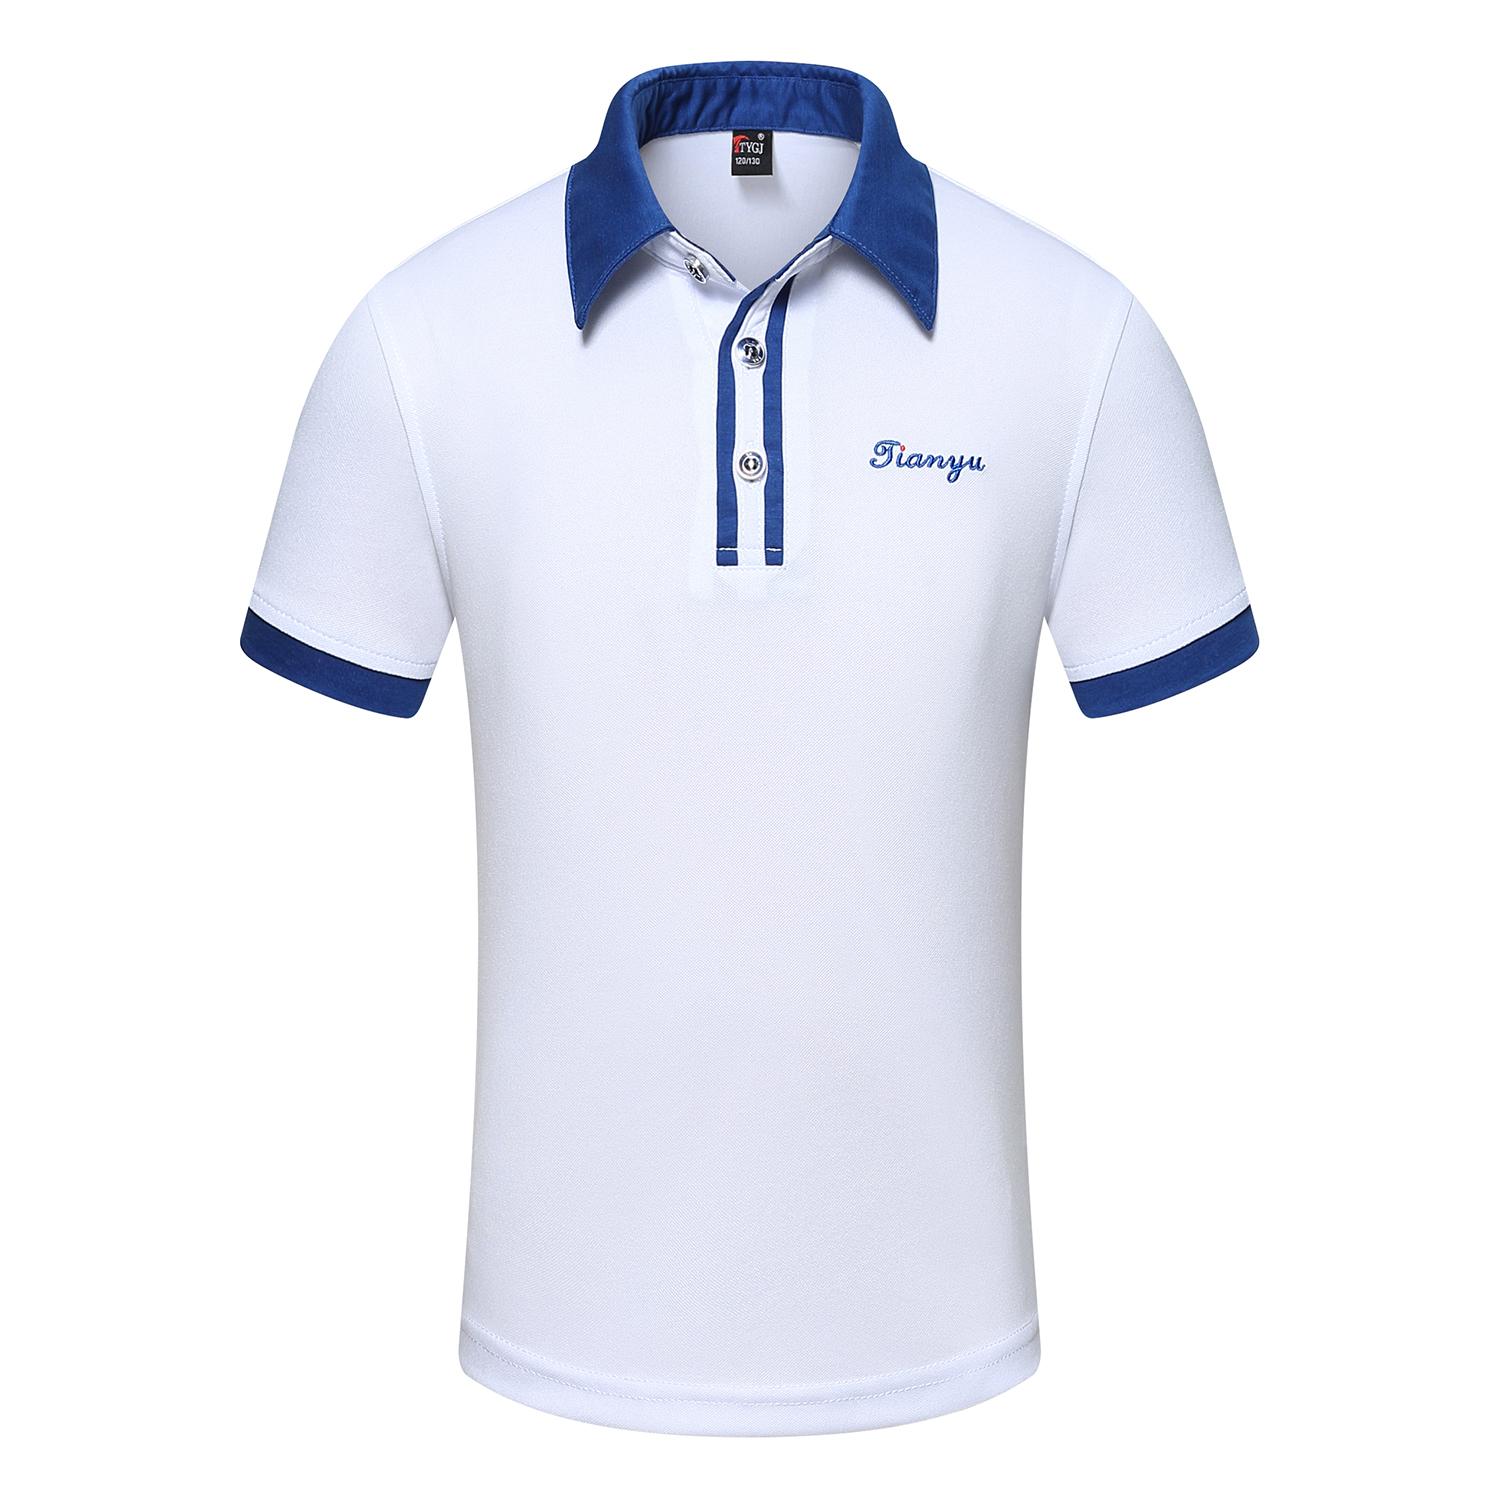 WHITE POLO SHIRT FOR MEN AND WOMEN